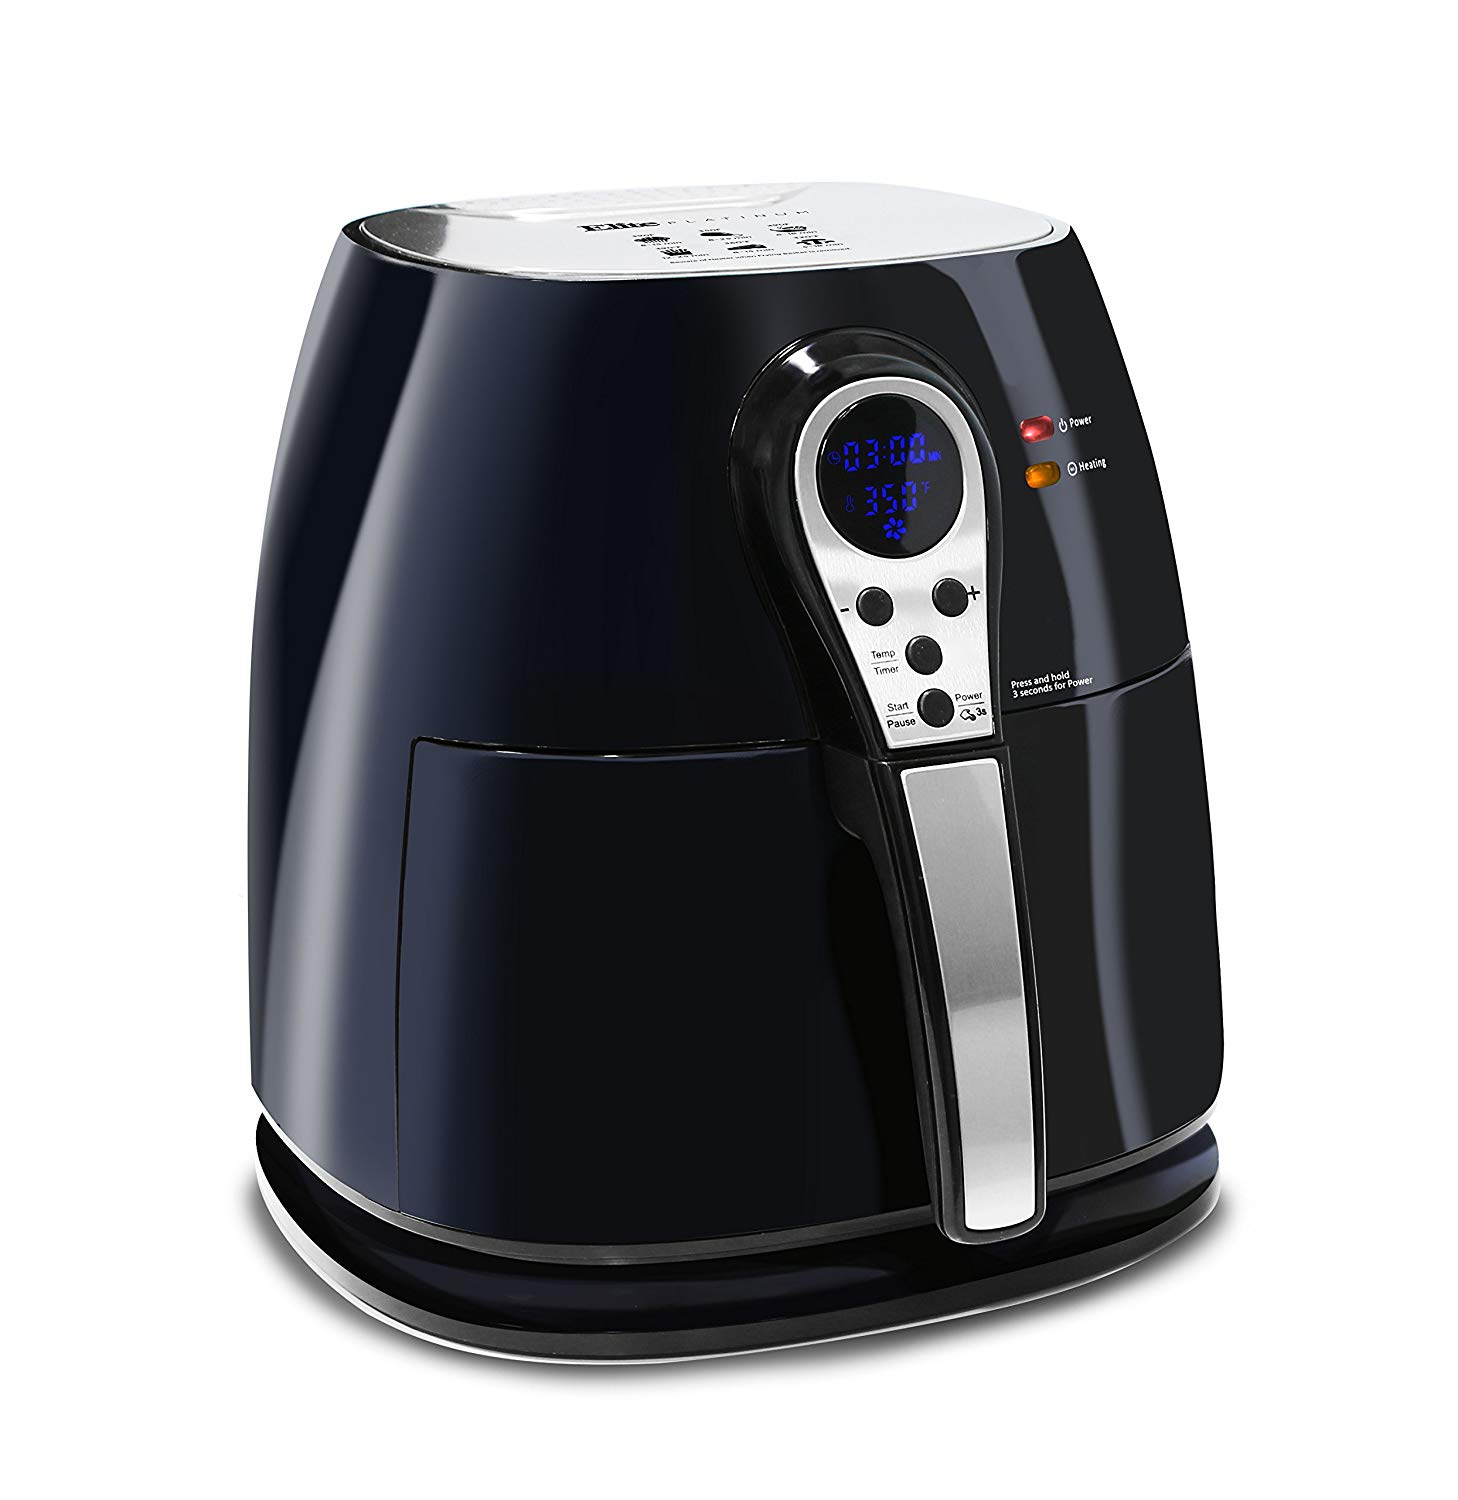 ELITE PLATINUM EAF-05 DIGITAL MULTI FRYER 3.2QT FRY COOK BAKE